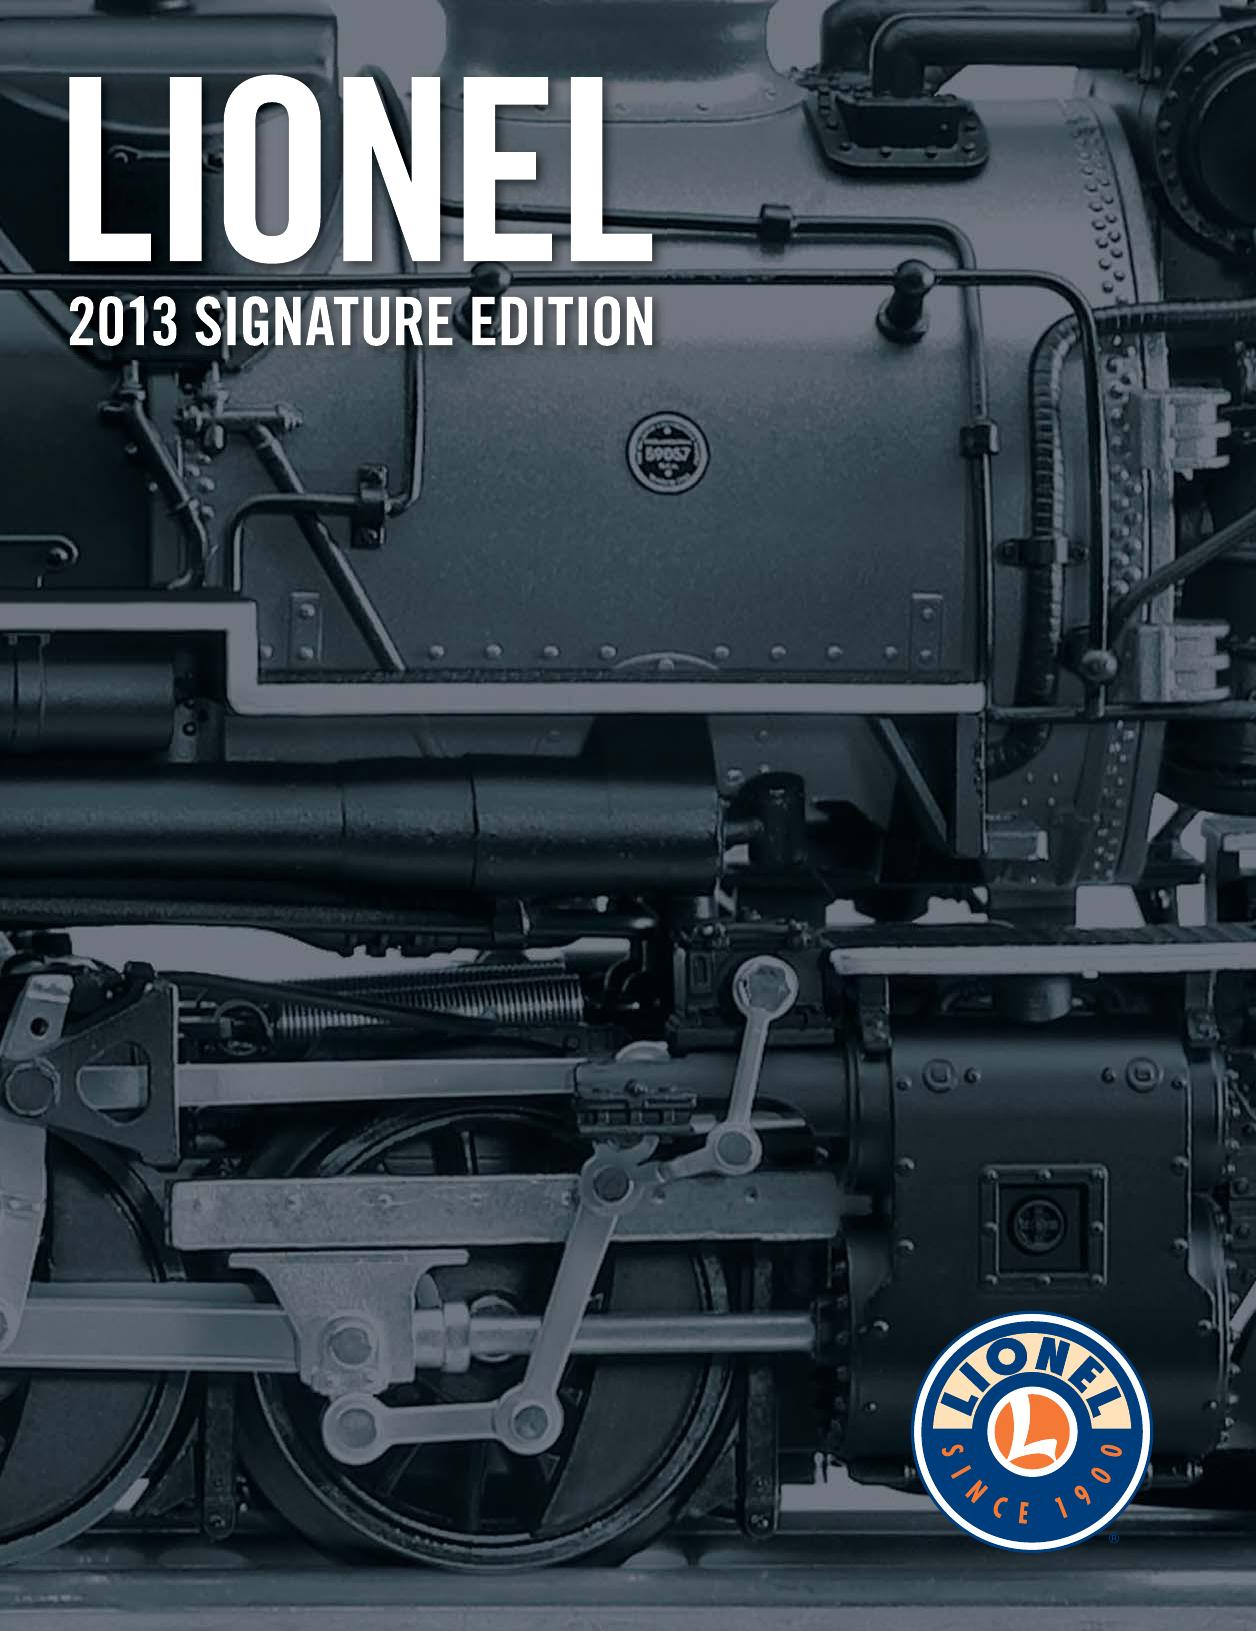 Lionel Catalogs - Signature Edition 2013